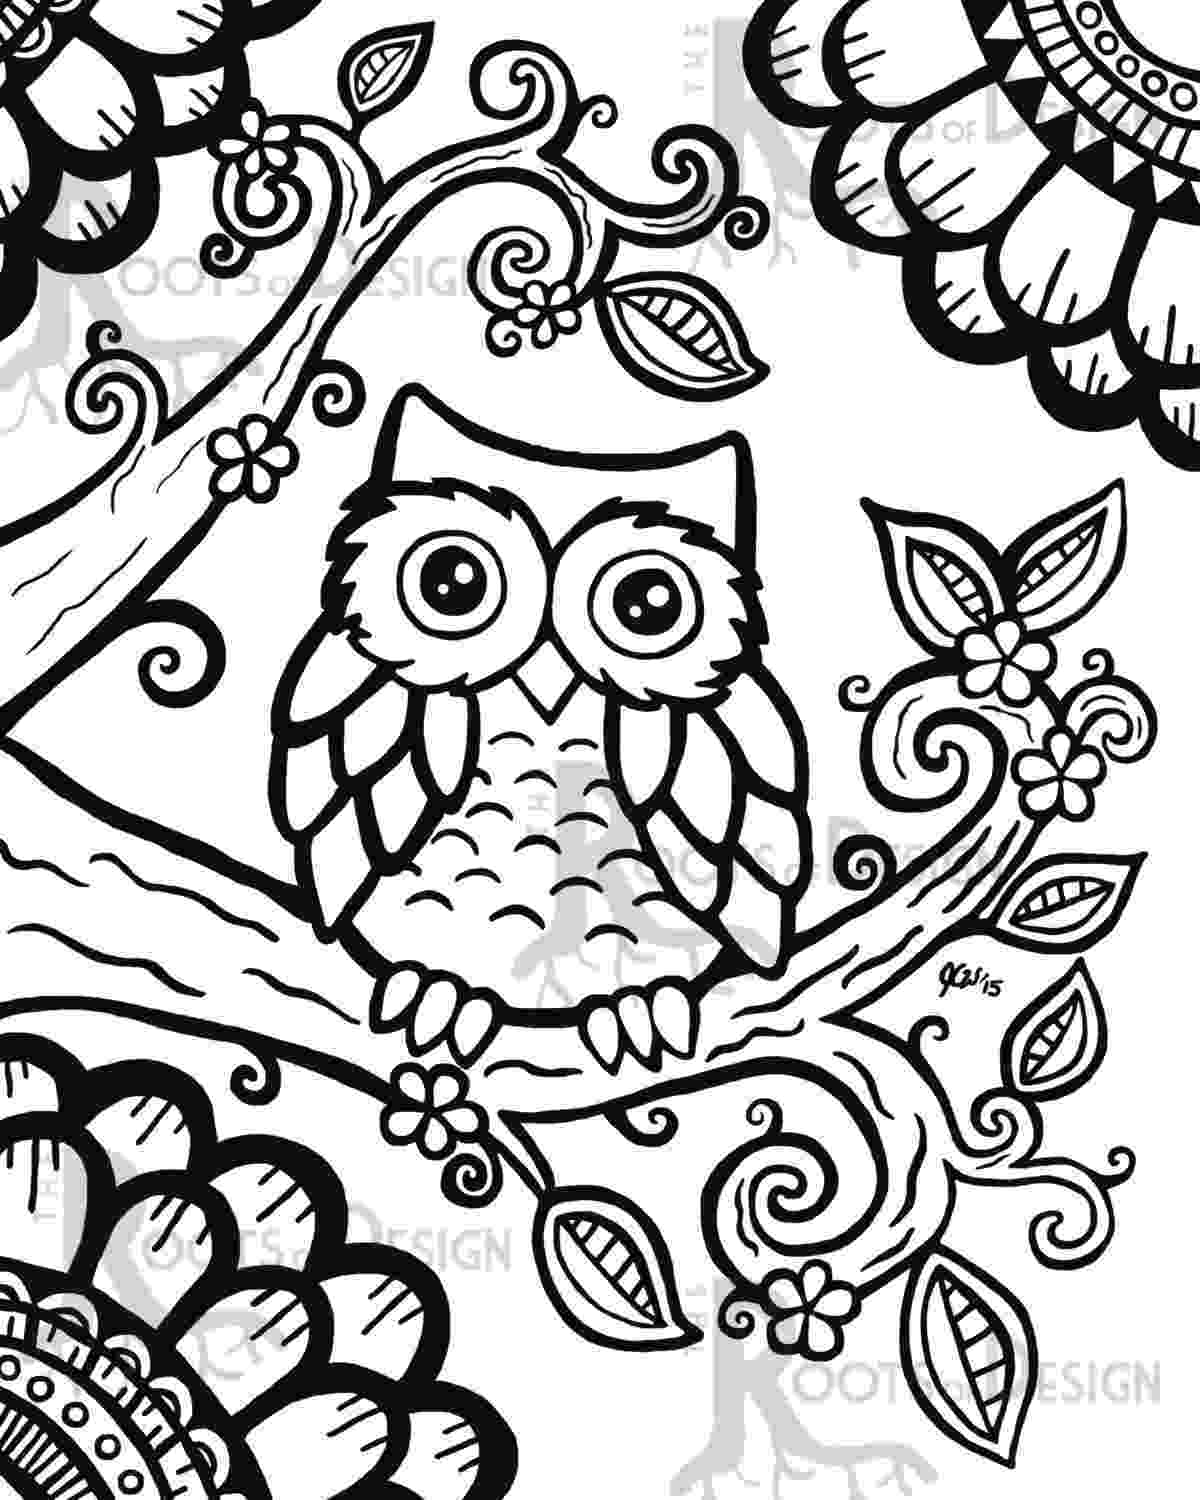 colored pictures of owls januari 2012 owls colored pictures of